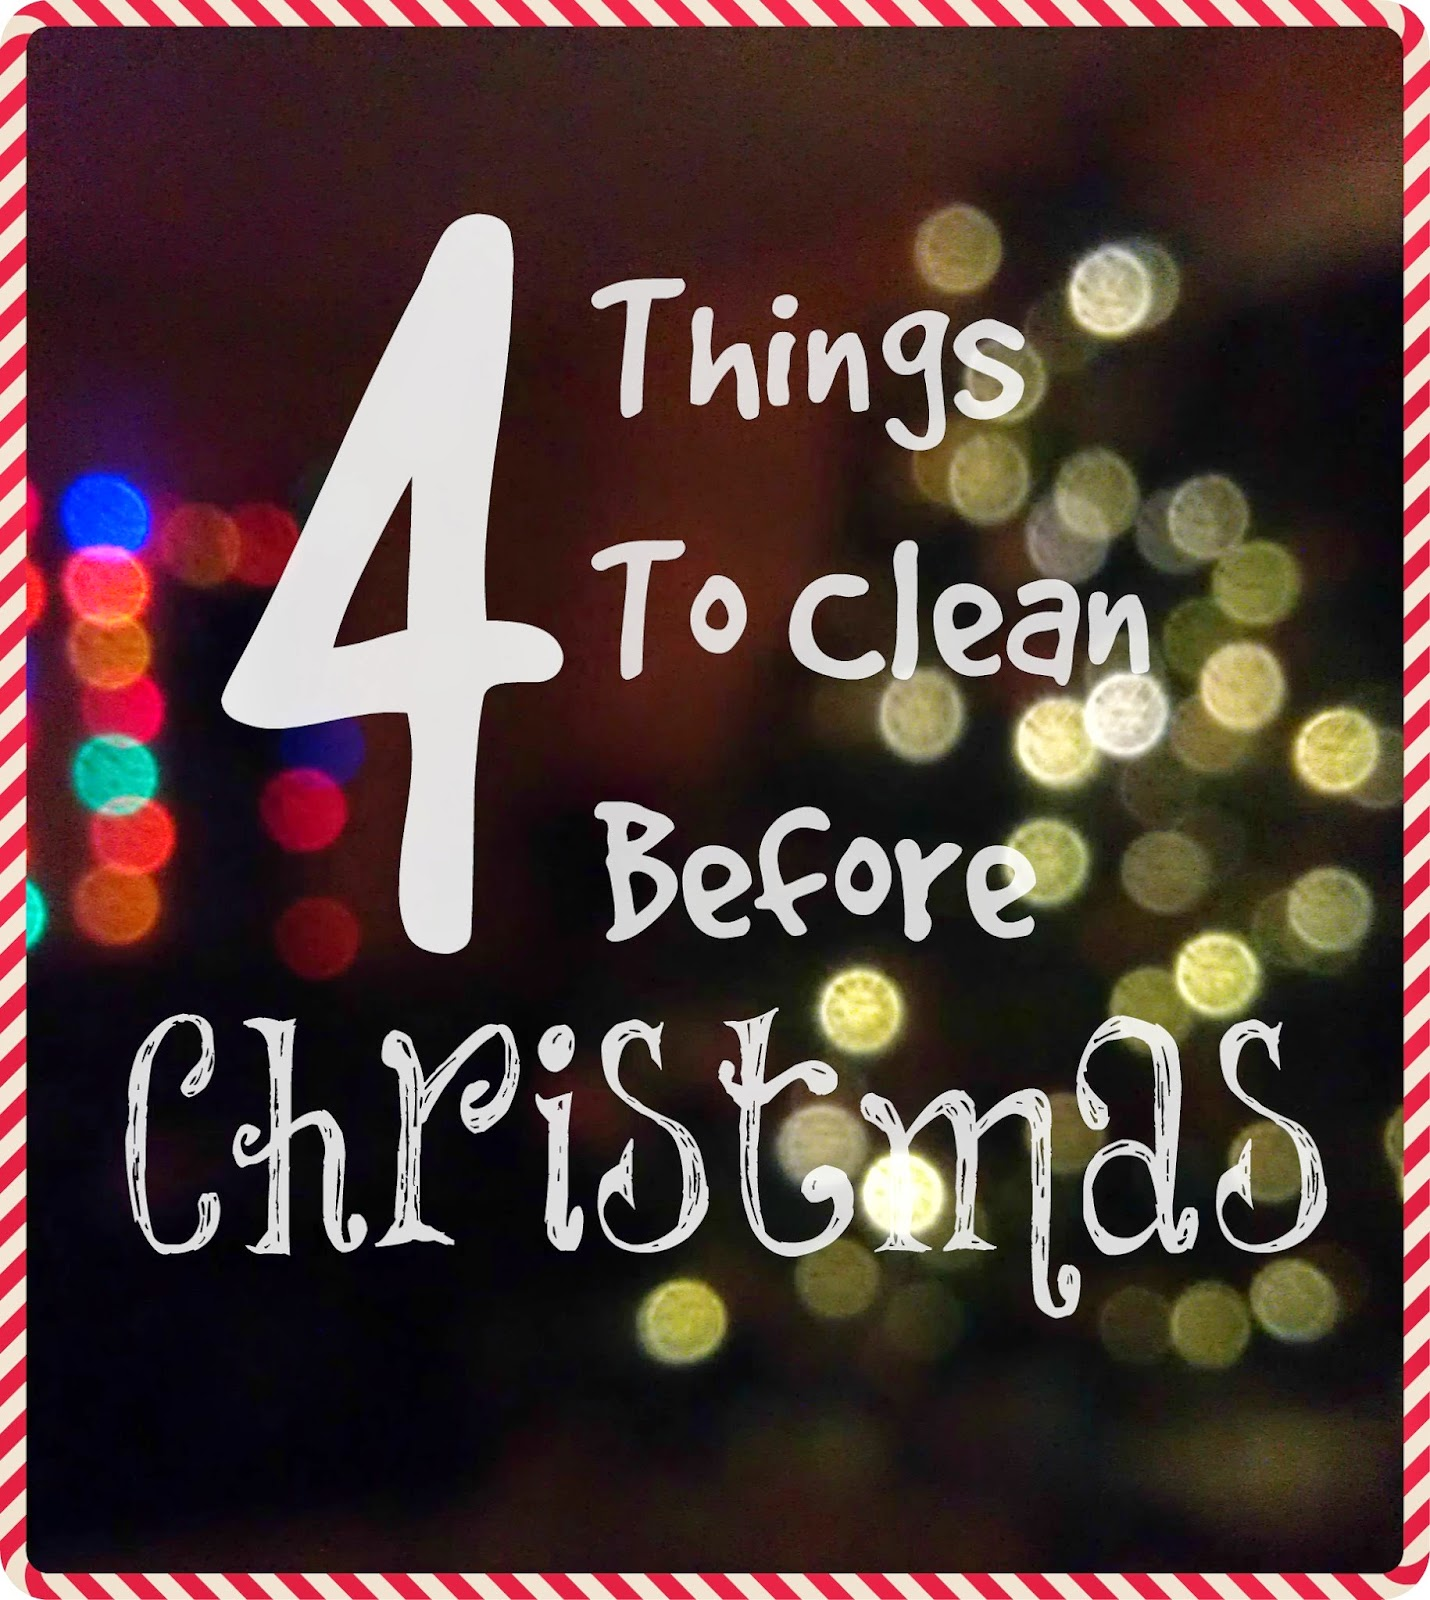 4 things to clean before Christmas #sponsored http://ooh.li/631c67d